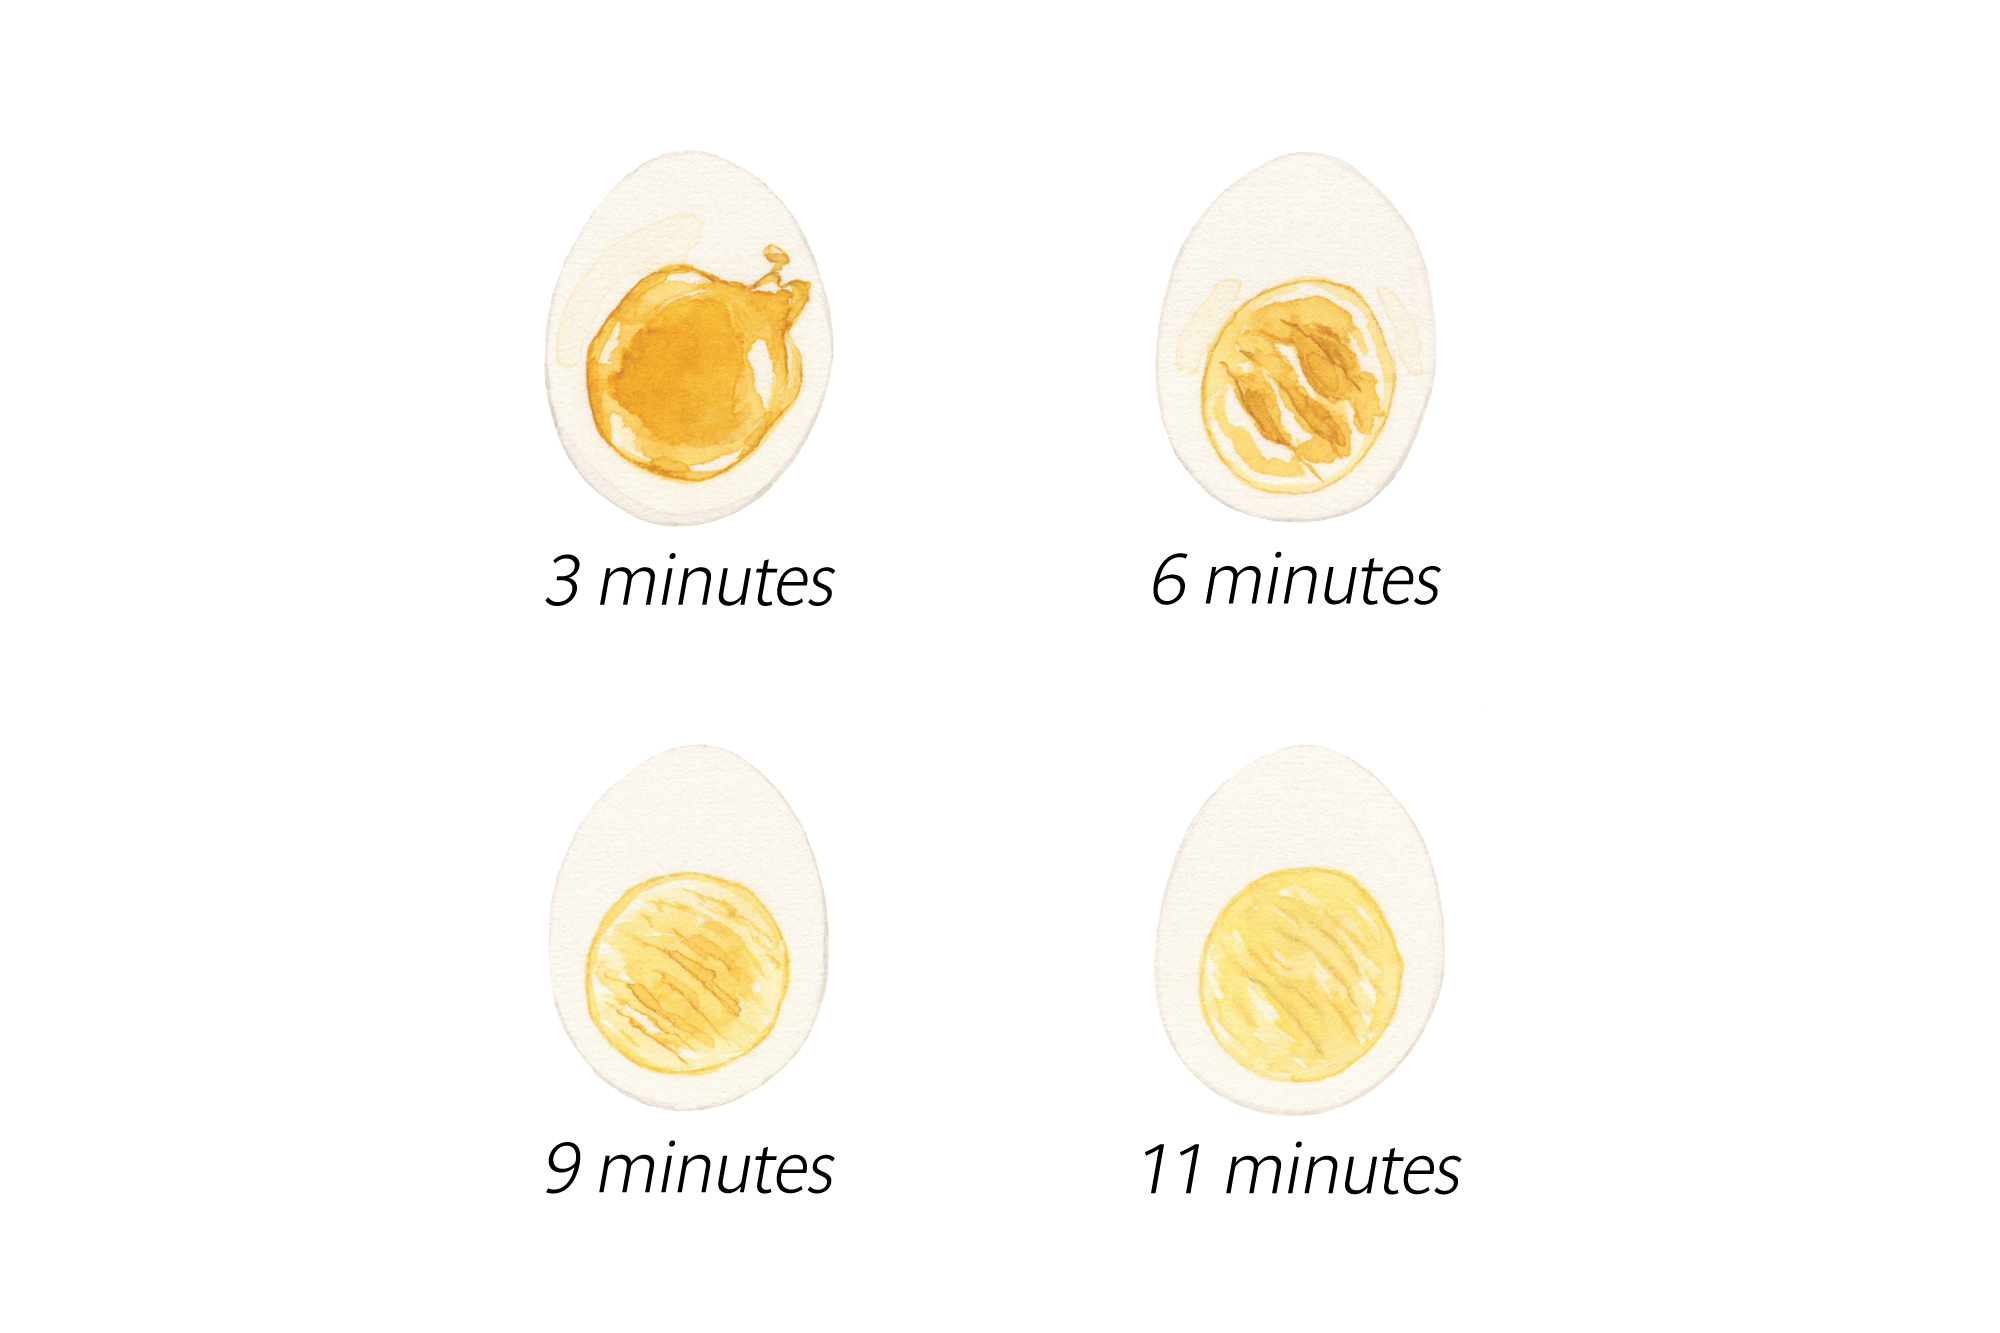 Illustration of hard- and soft-boiled eggs